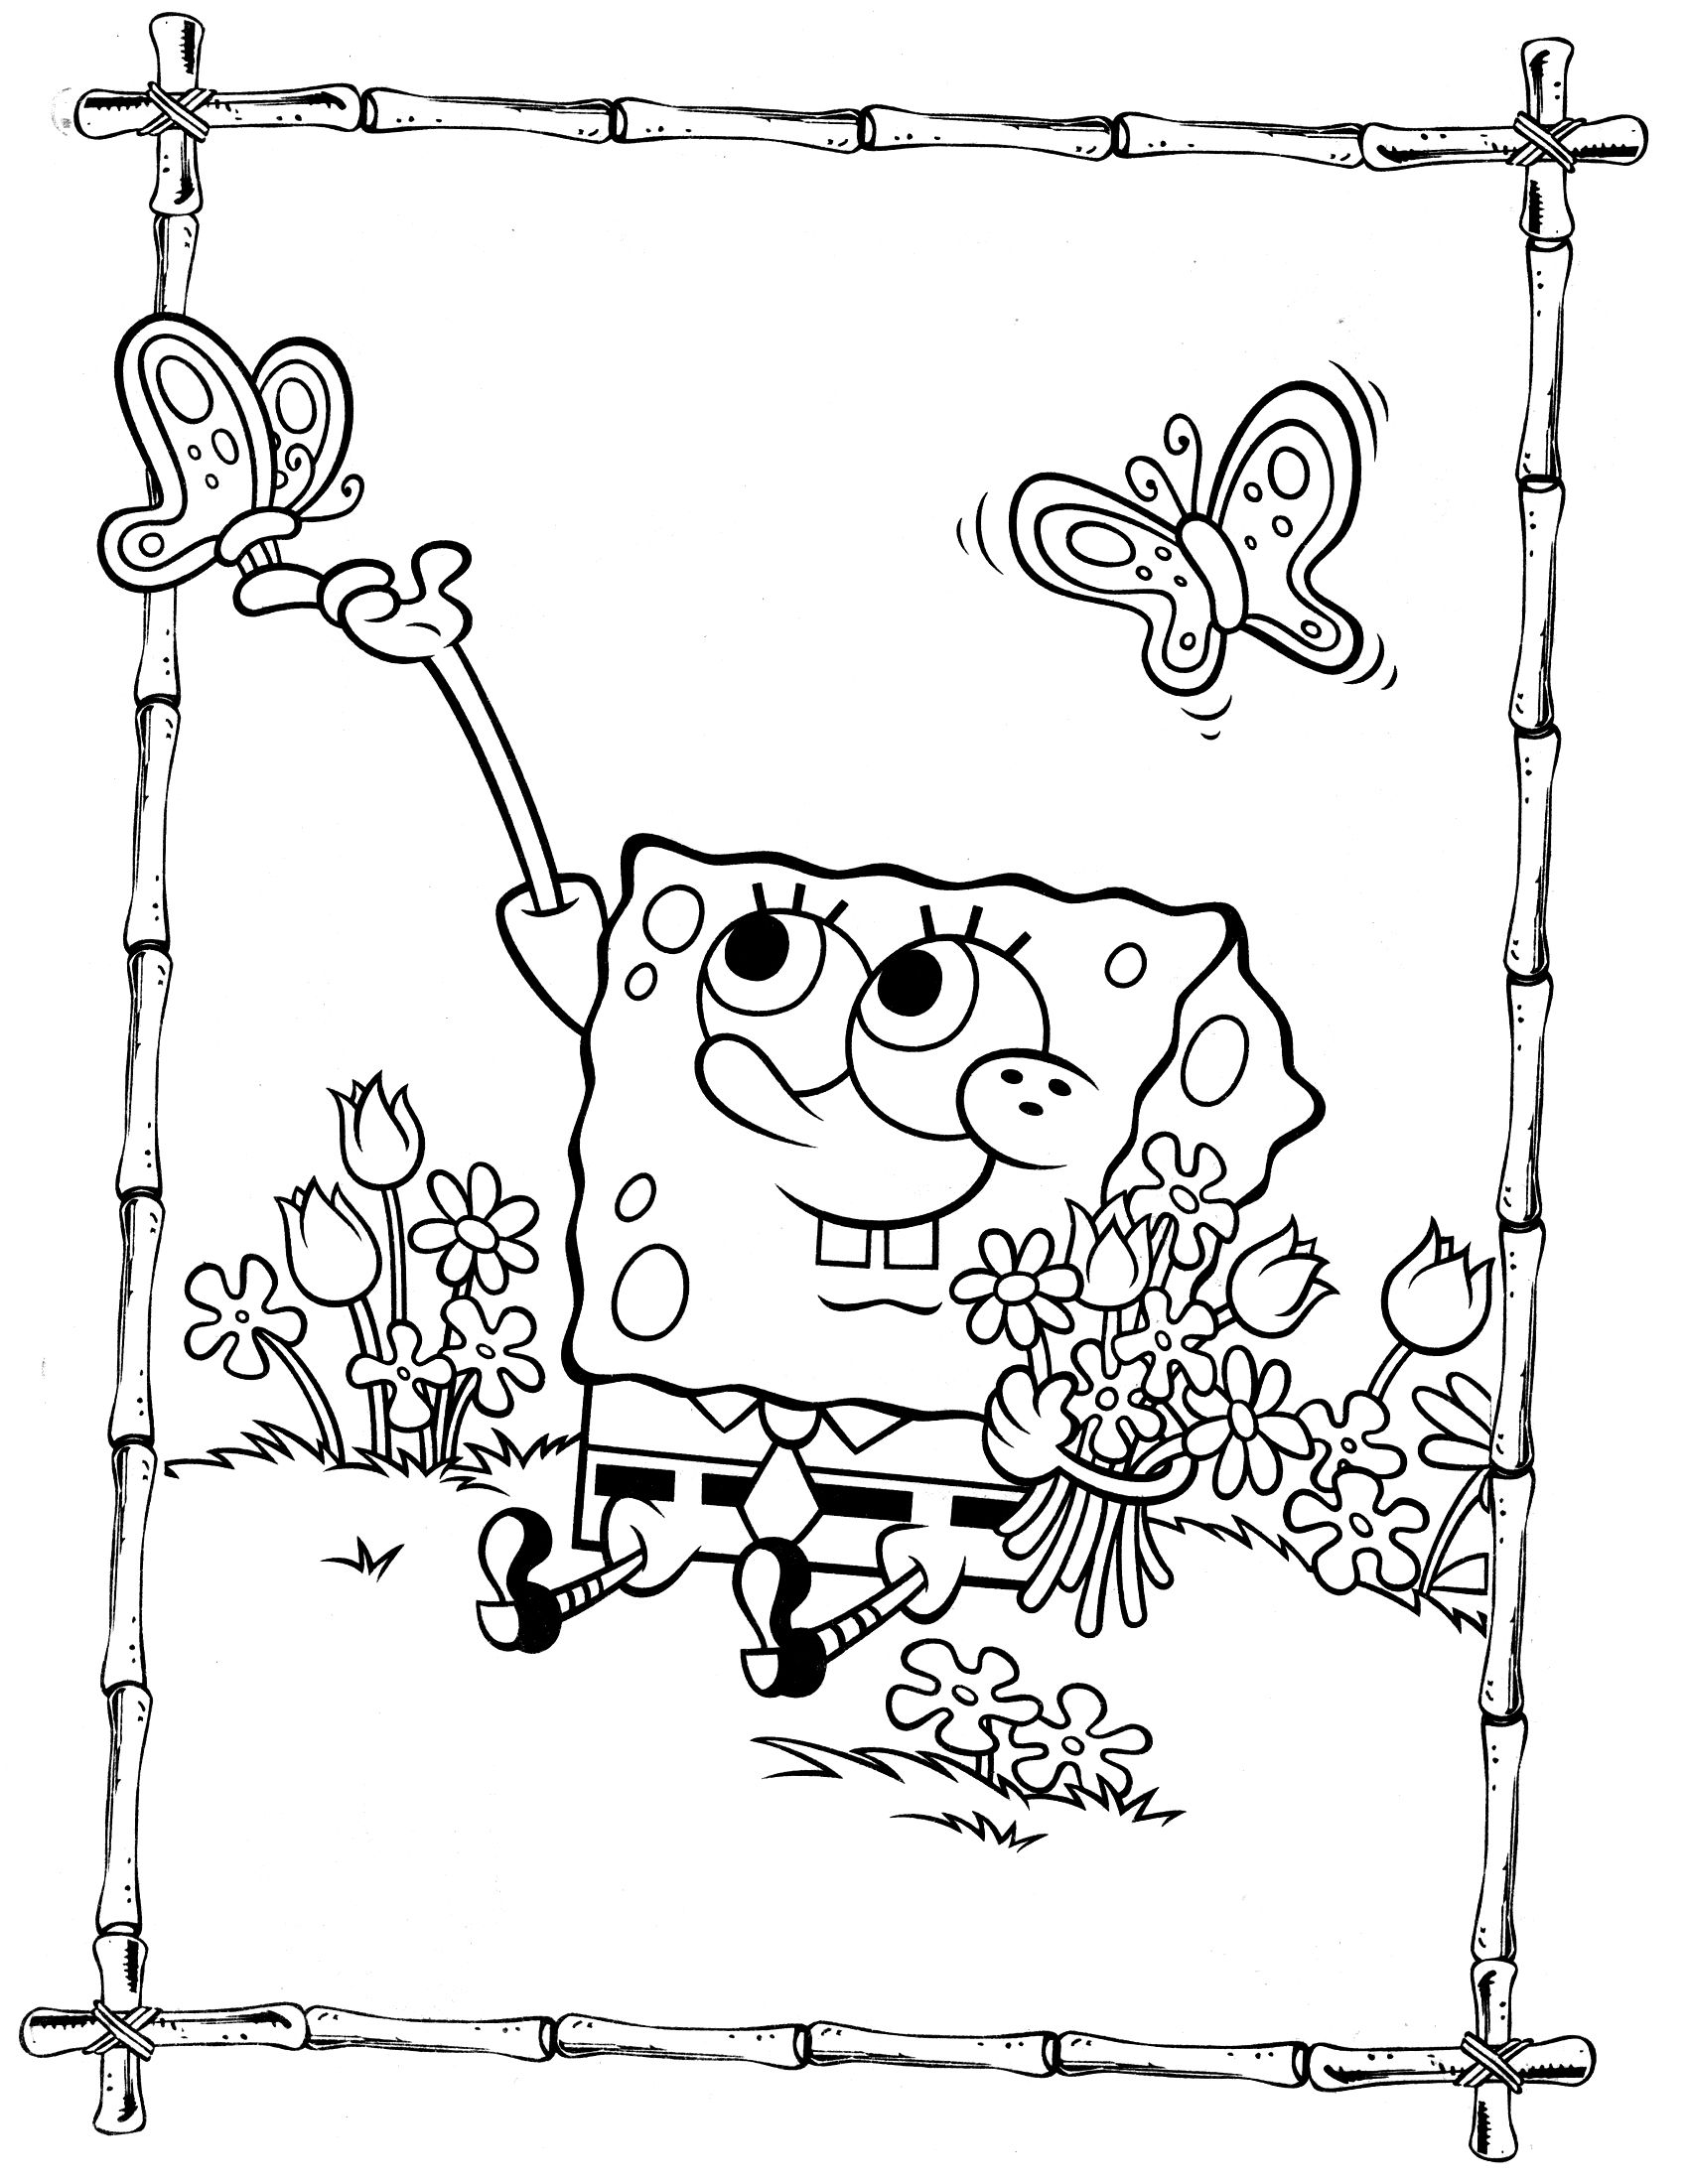 Spongebob coloring page coloring pages miscellaneous pinterest